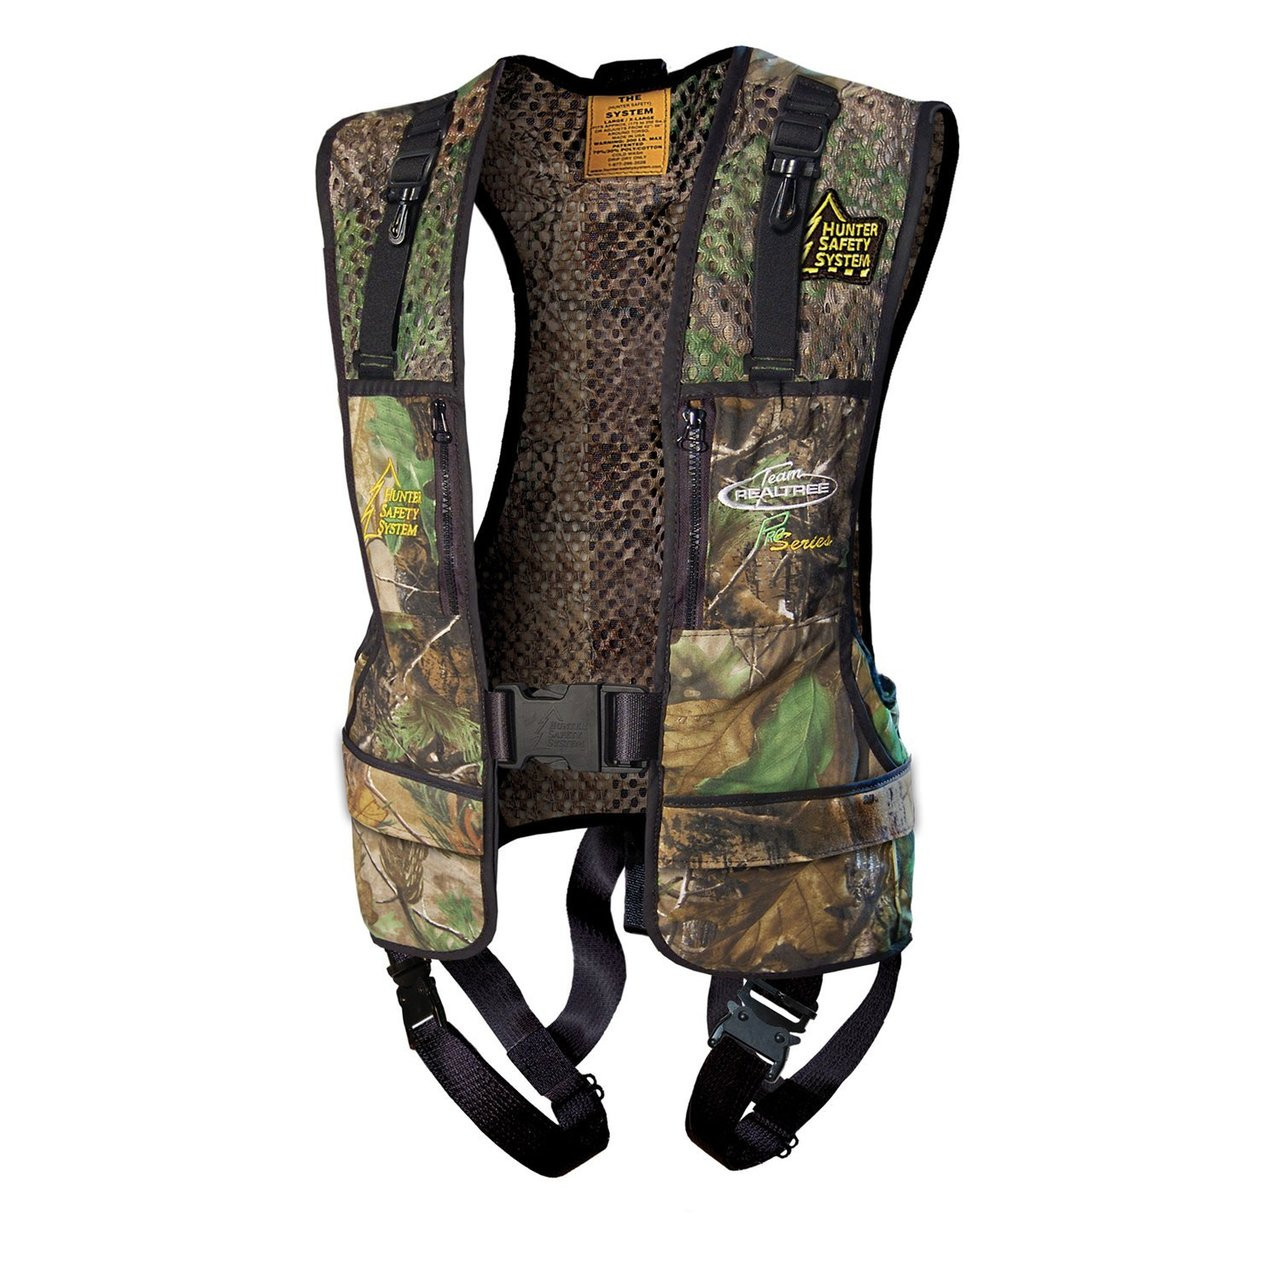 16955_16954_Hunter_Safety_Pro_Series_Harnesses_realtree__06366.1411746249.1280.1280?c=2 hunter safety system pro series safety harness, 2x 3x hss 600